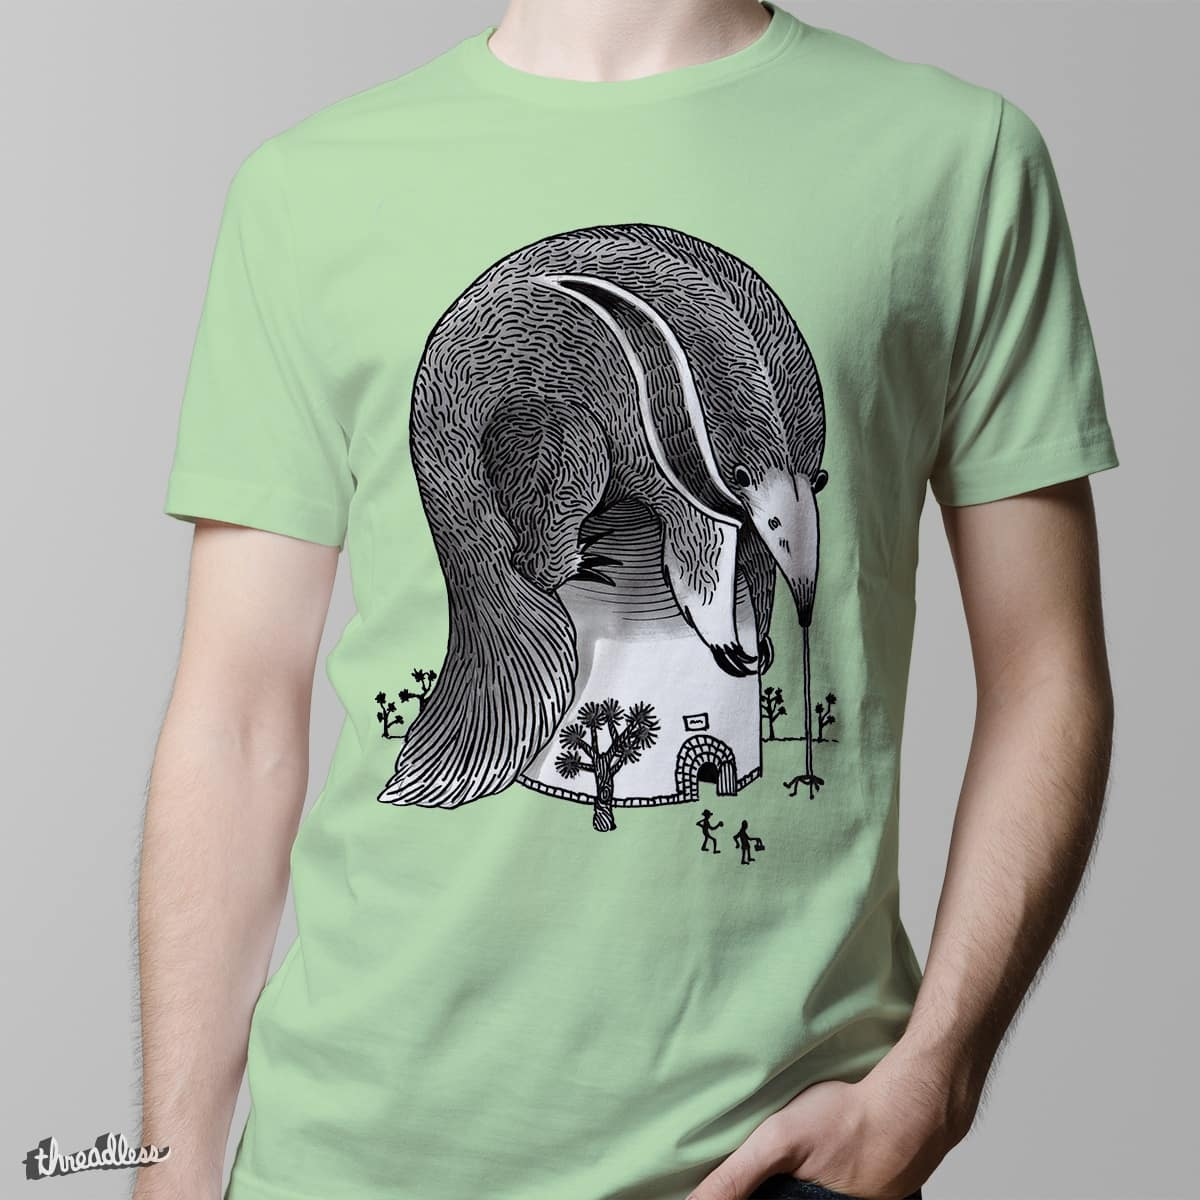 Attack of the Giant Anteater by annegwish33 on Threadless